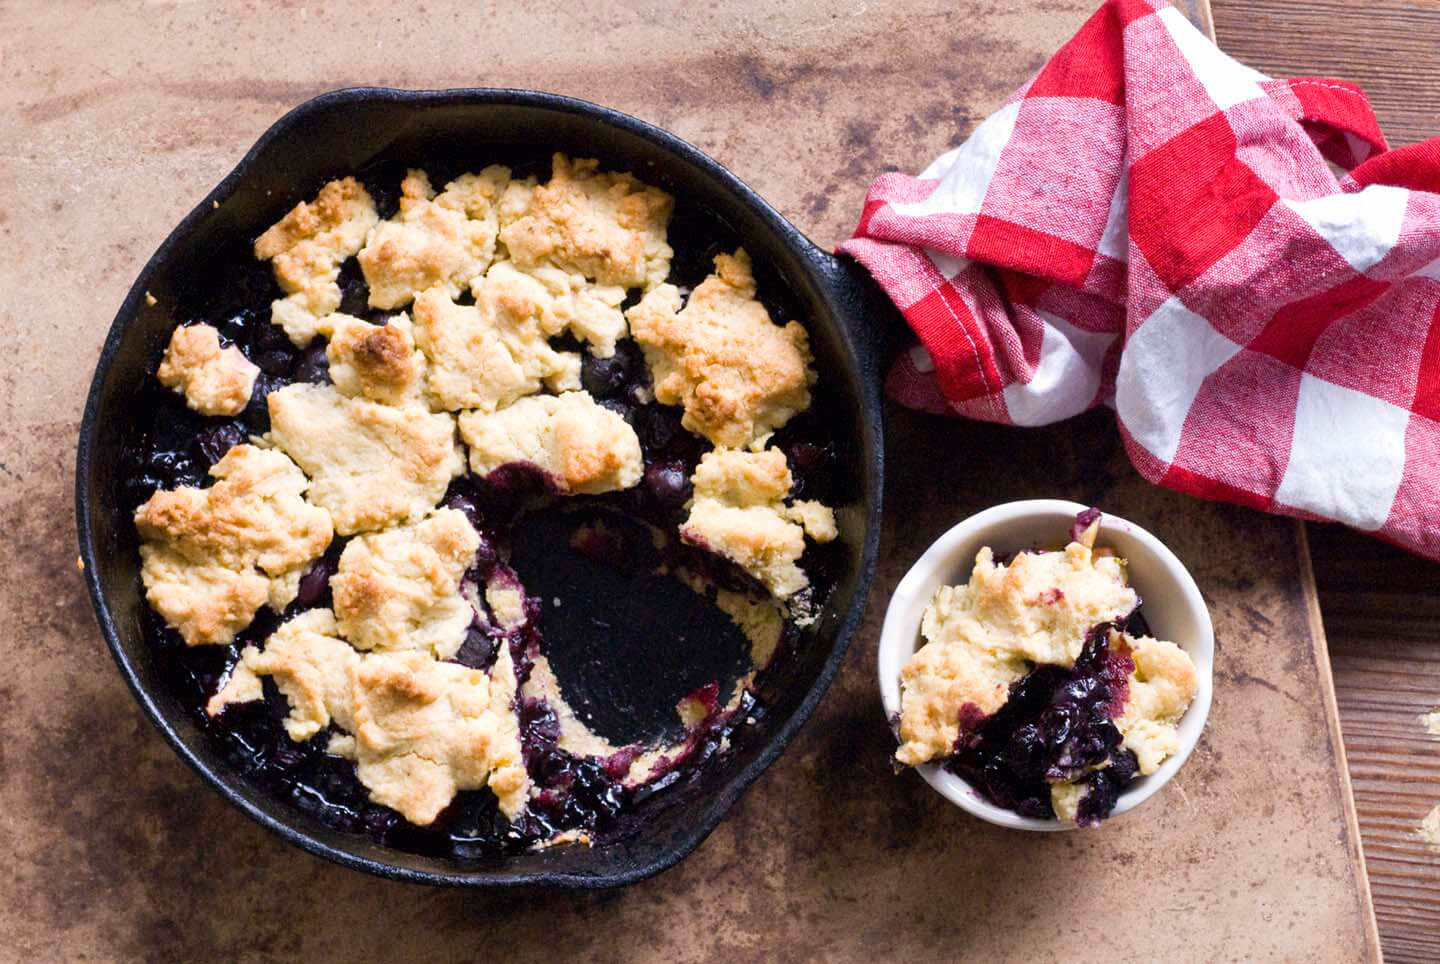 Blueberry lime cornmeal crumble | Homesick Texan